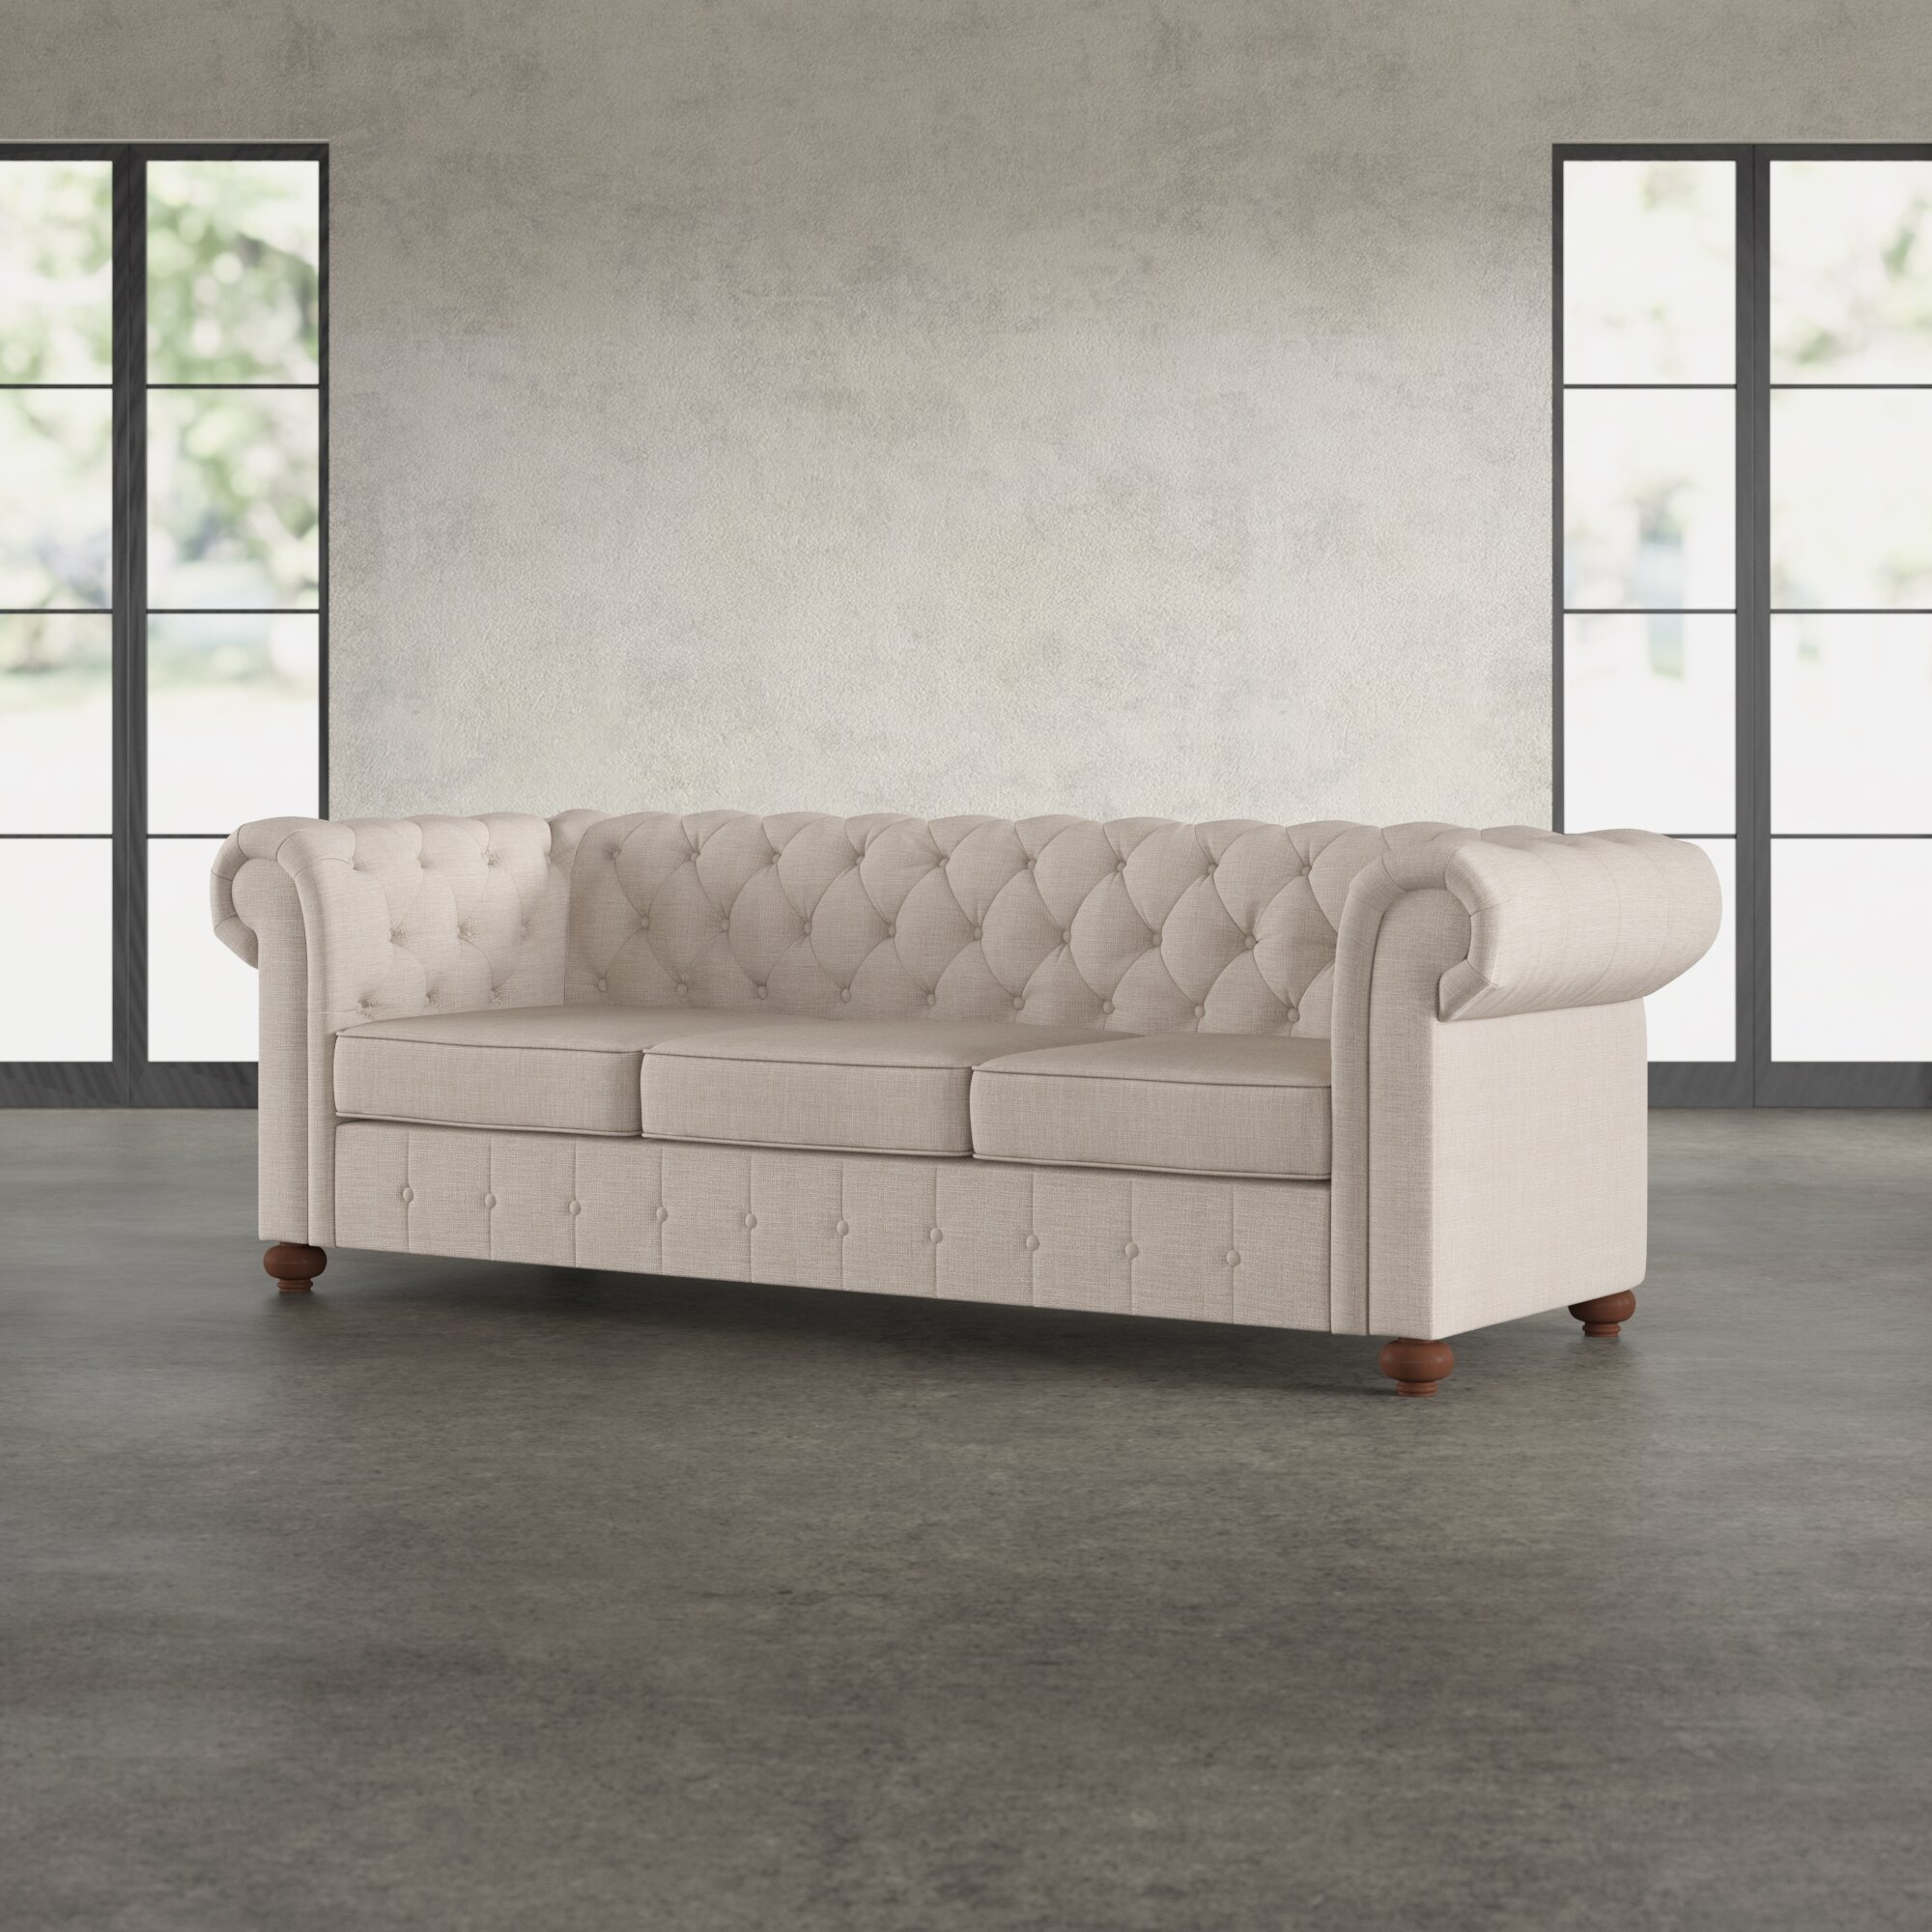 Comfortable Chesterfield Sofa